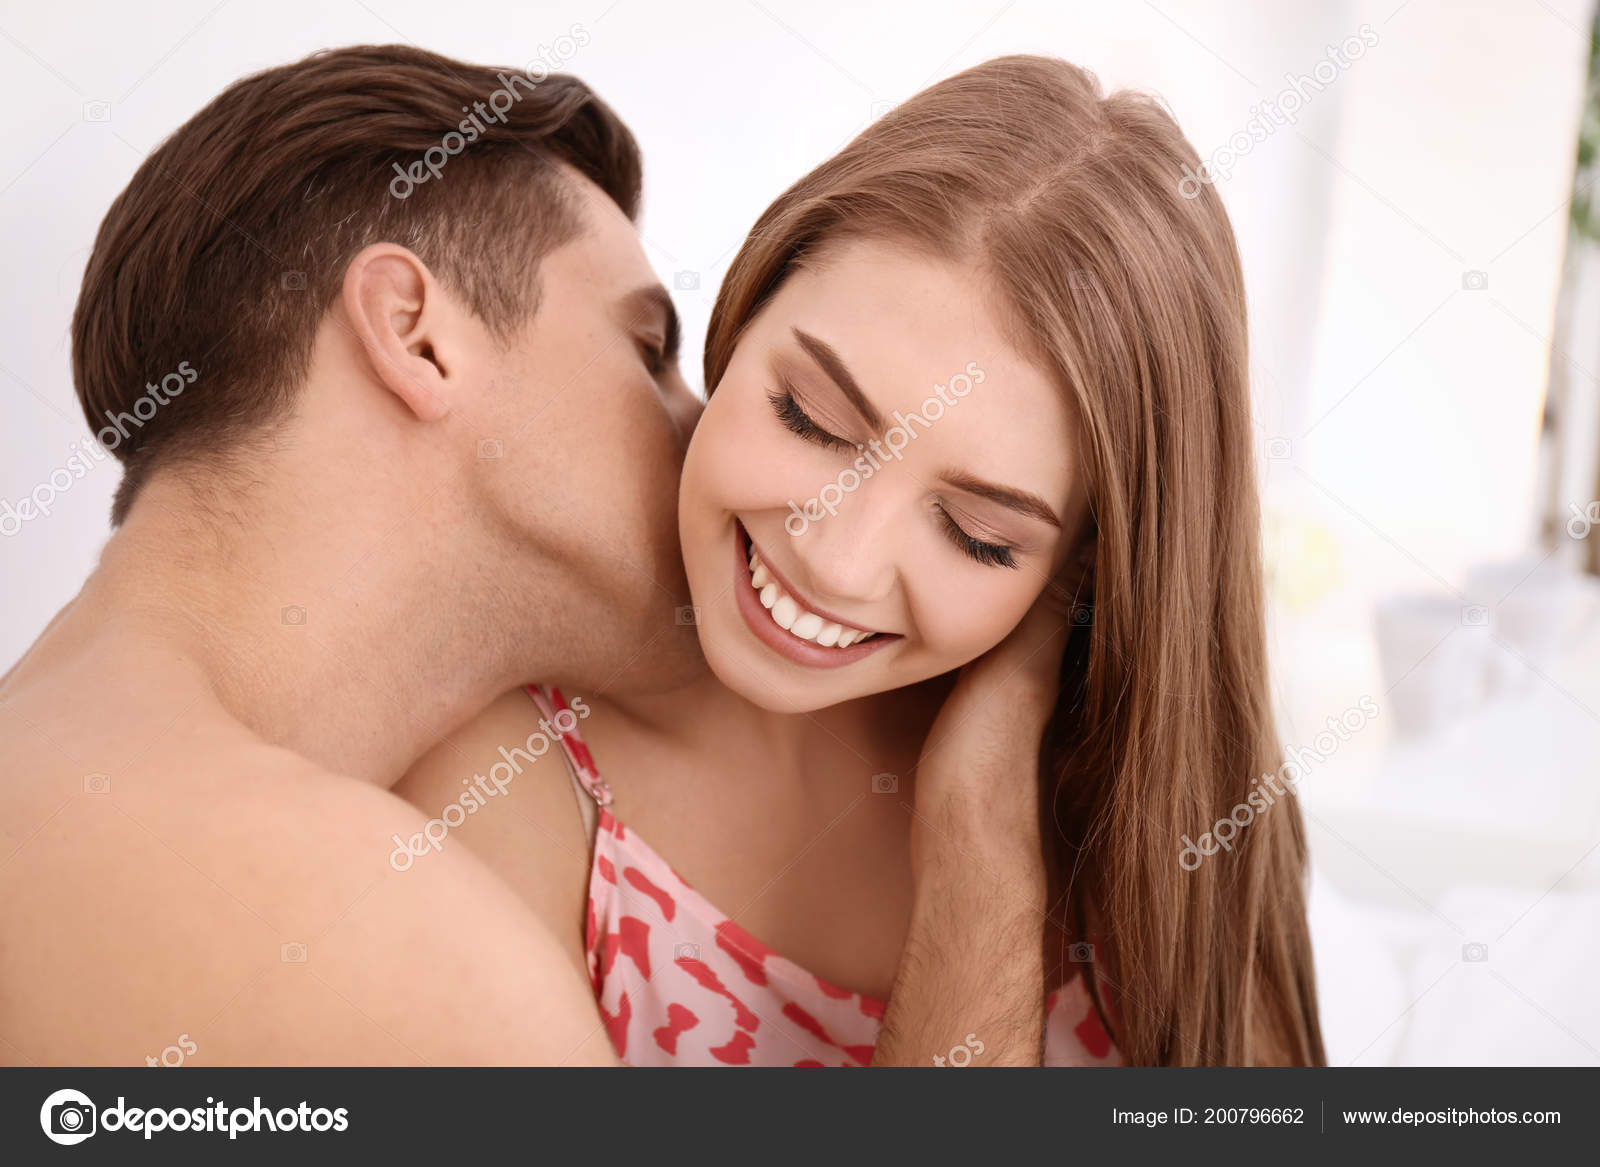 Sexiest dating site Fotos